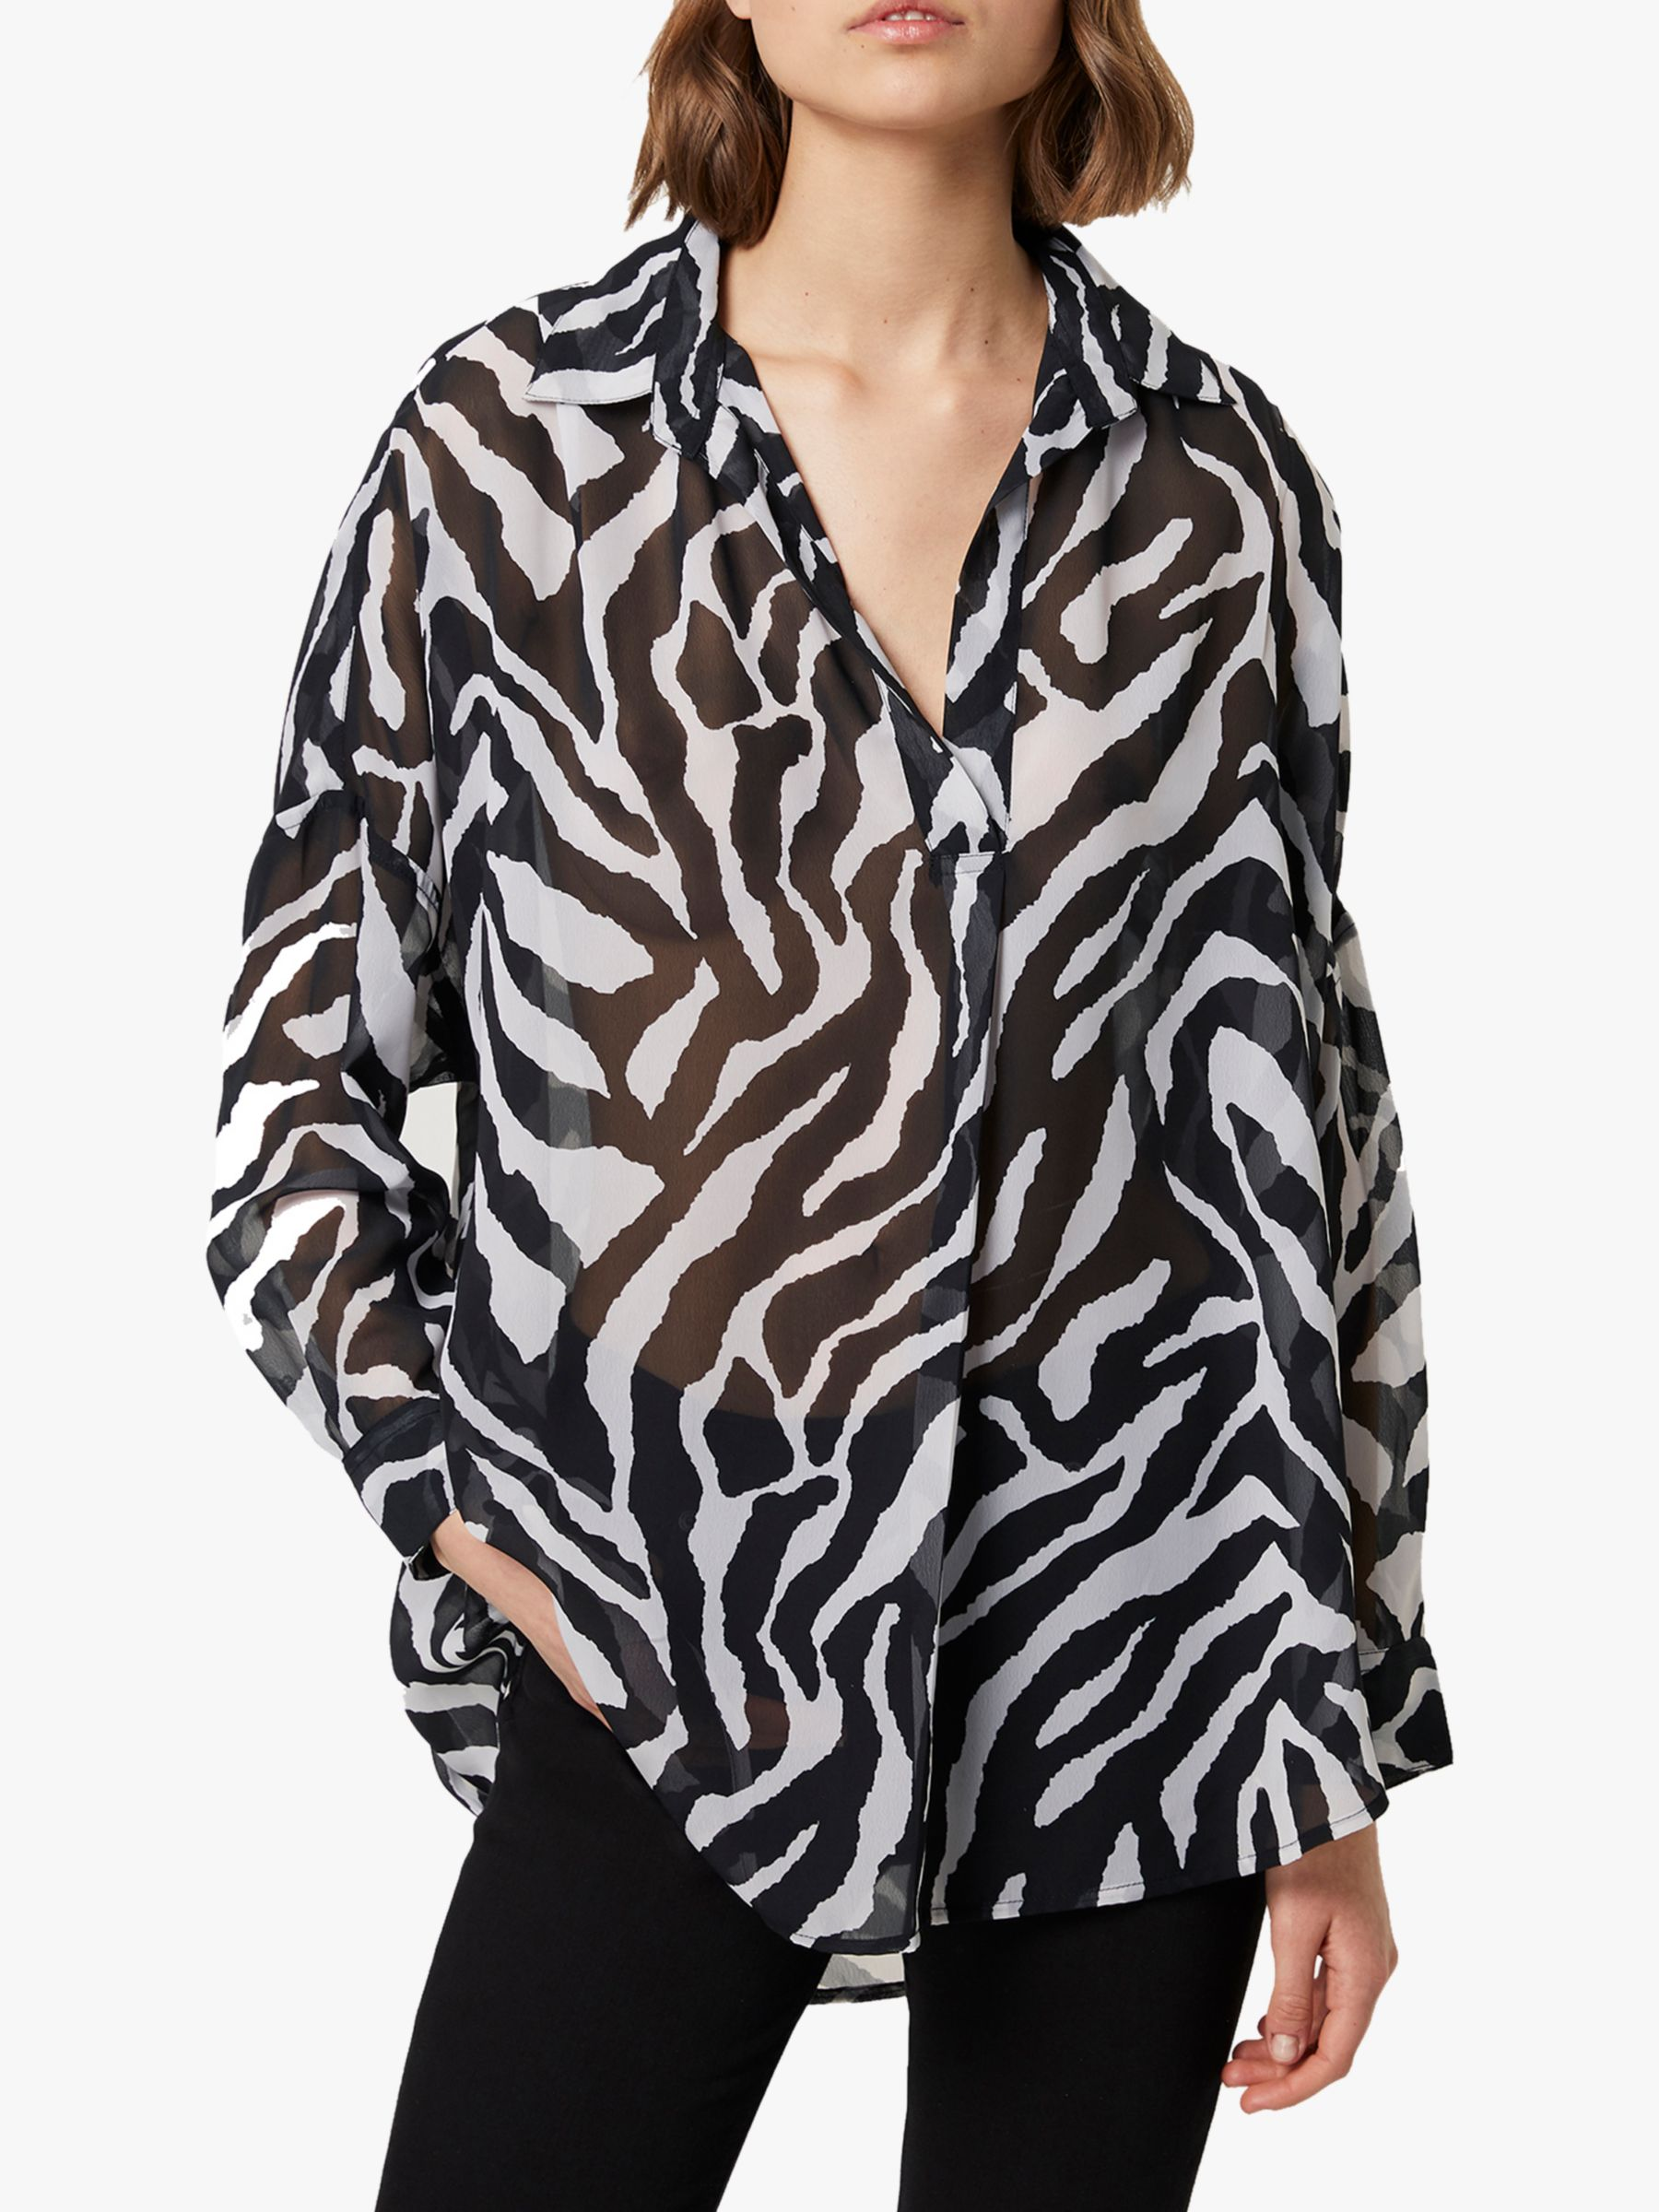 French Connection French Connection Sheer Zebra Print Shirt, Black/White